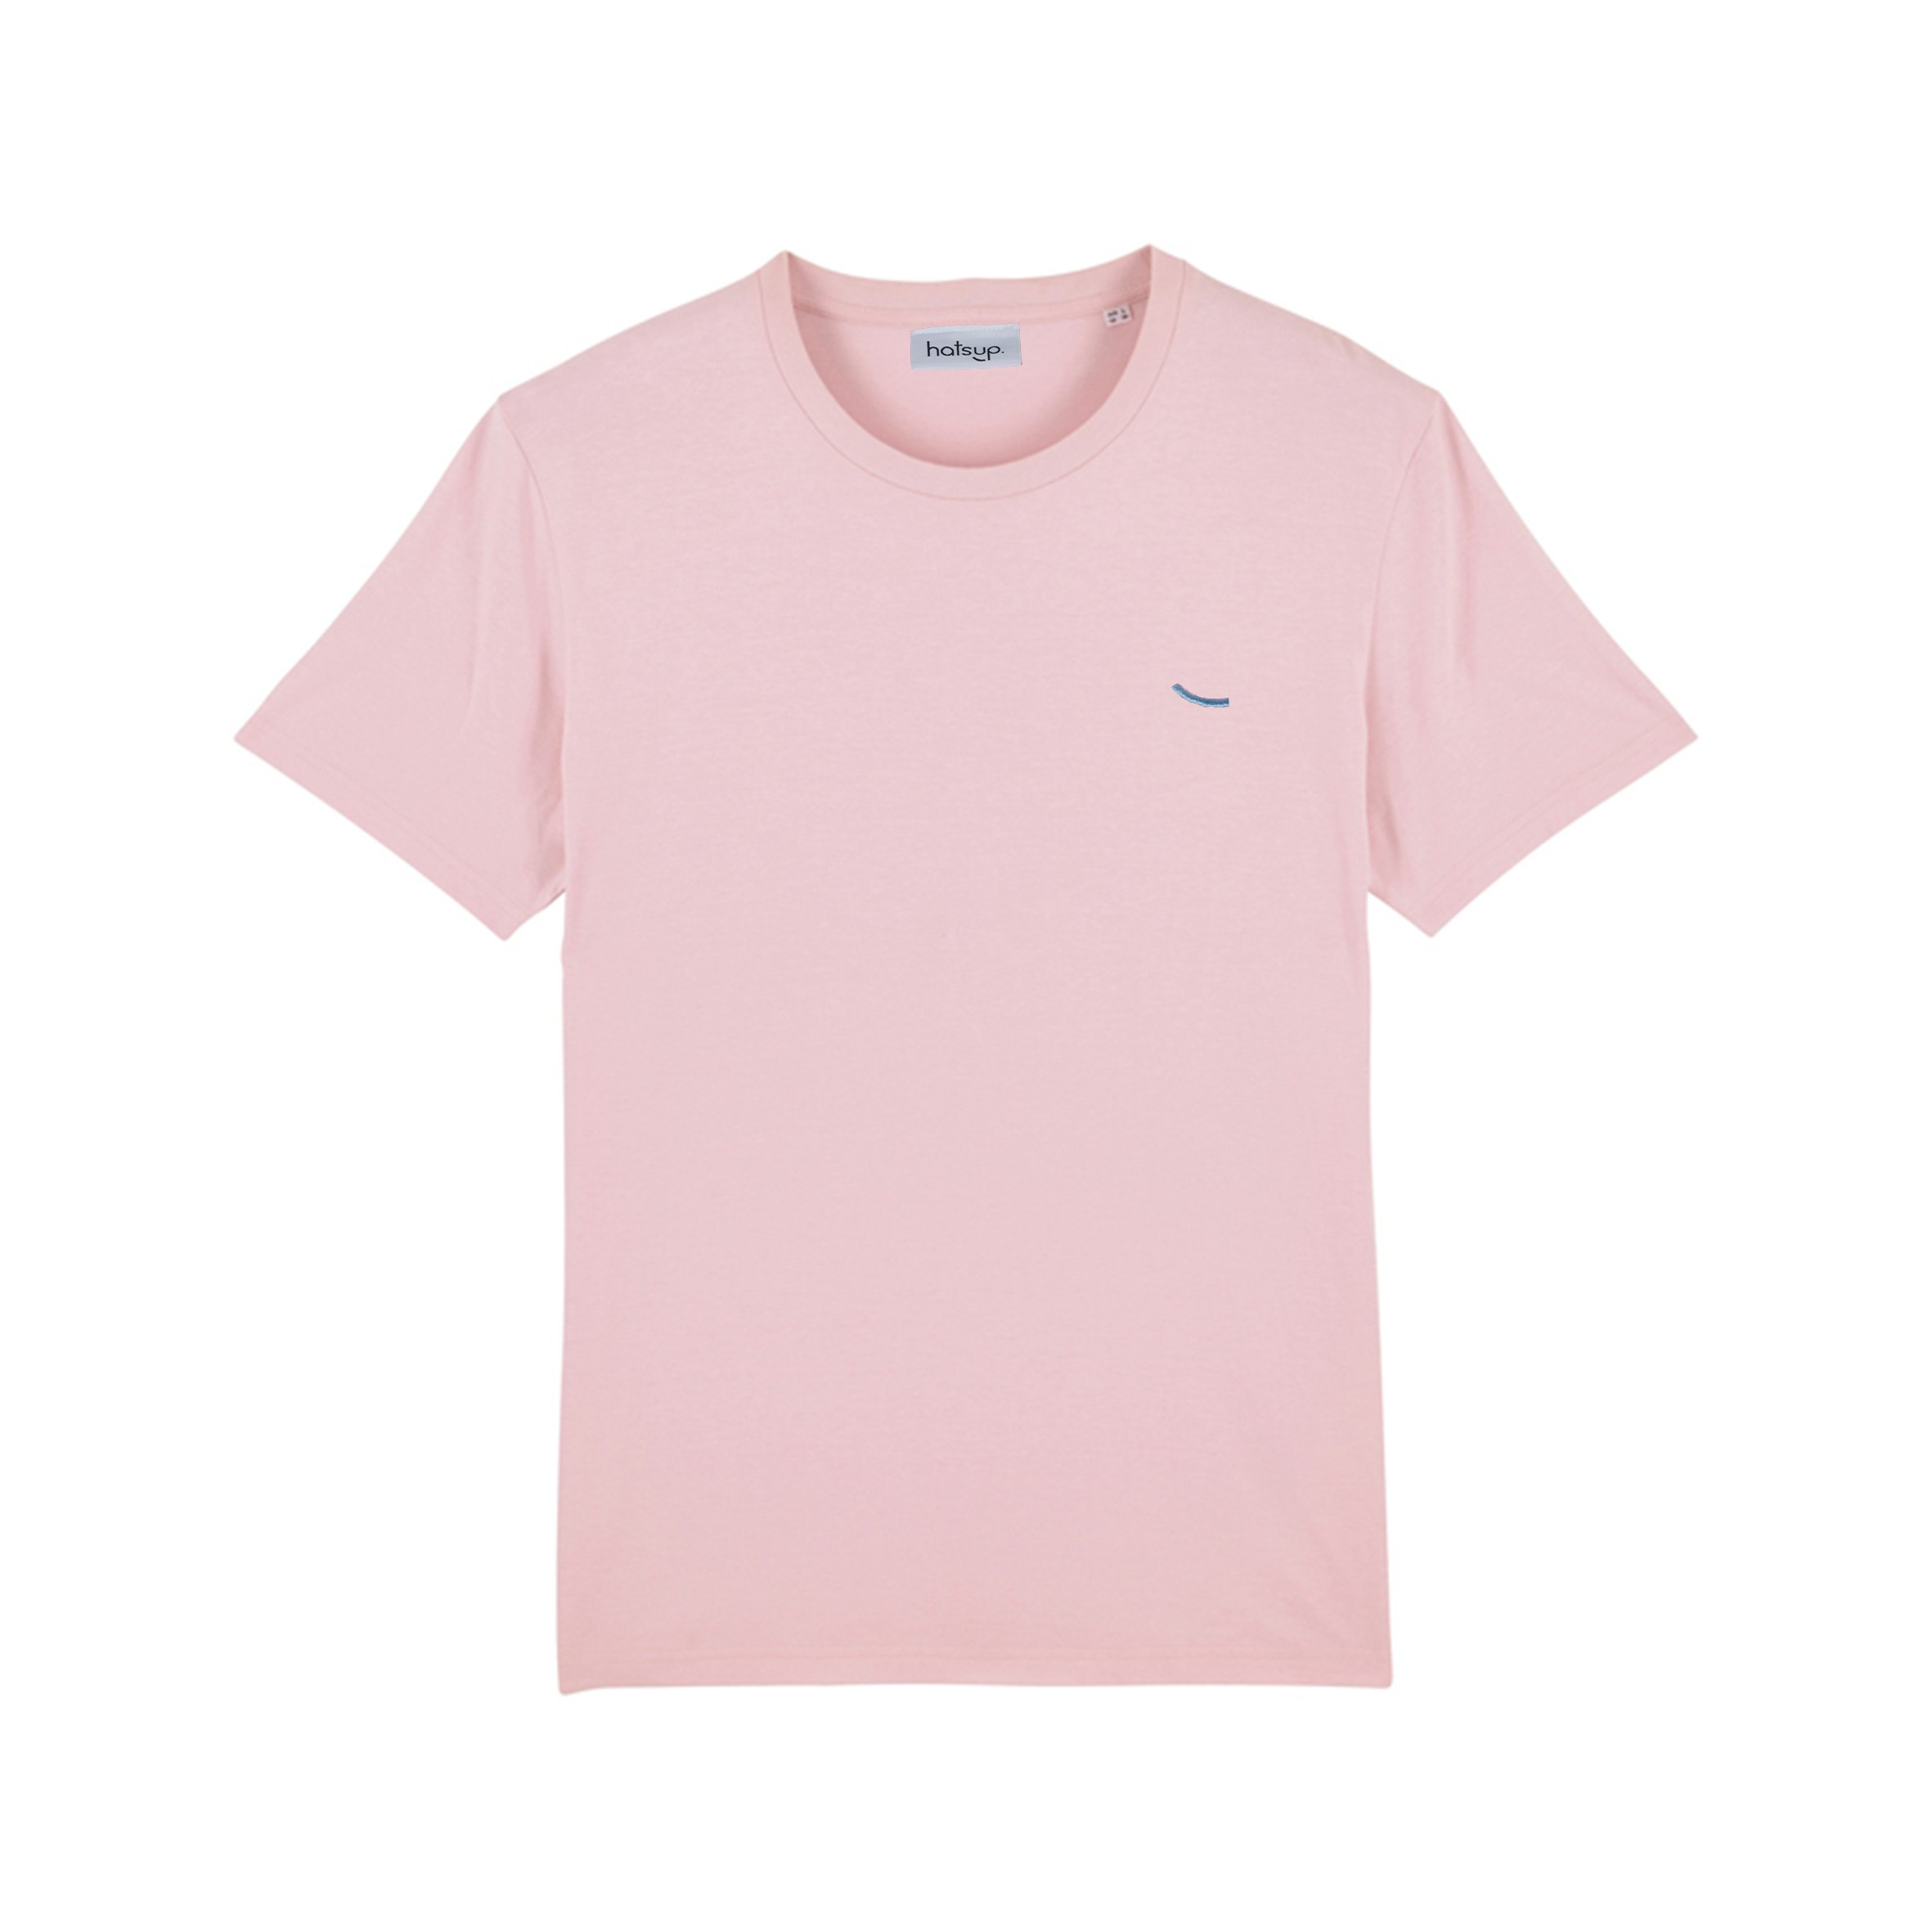 T-shirt Douala pink from hatsup